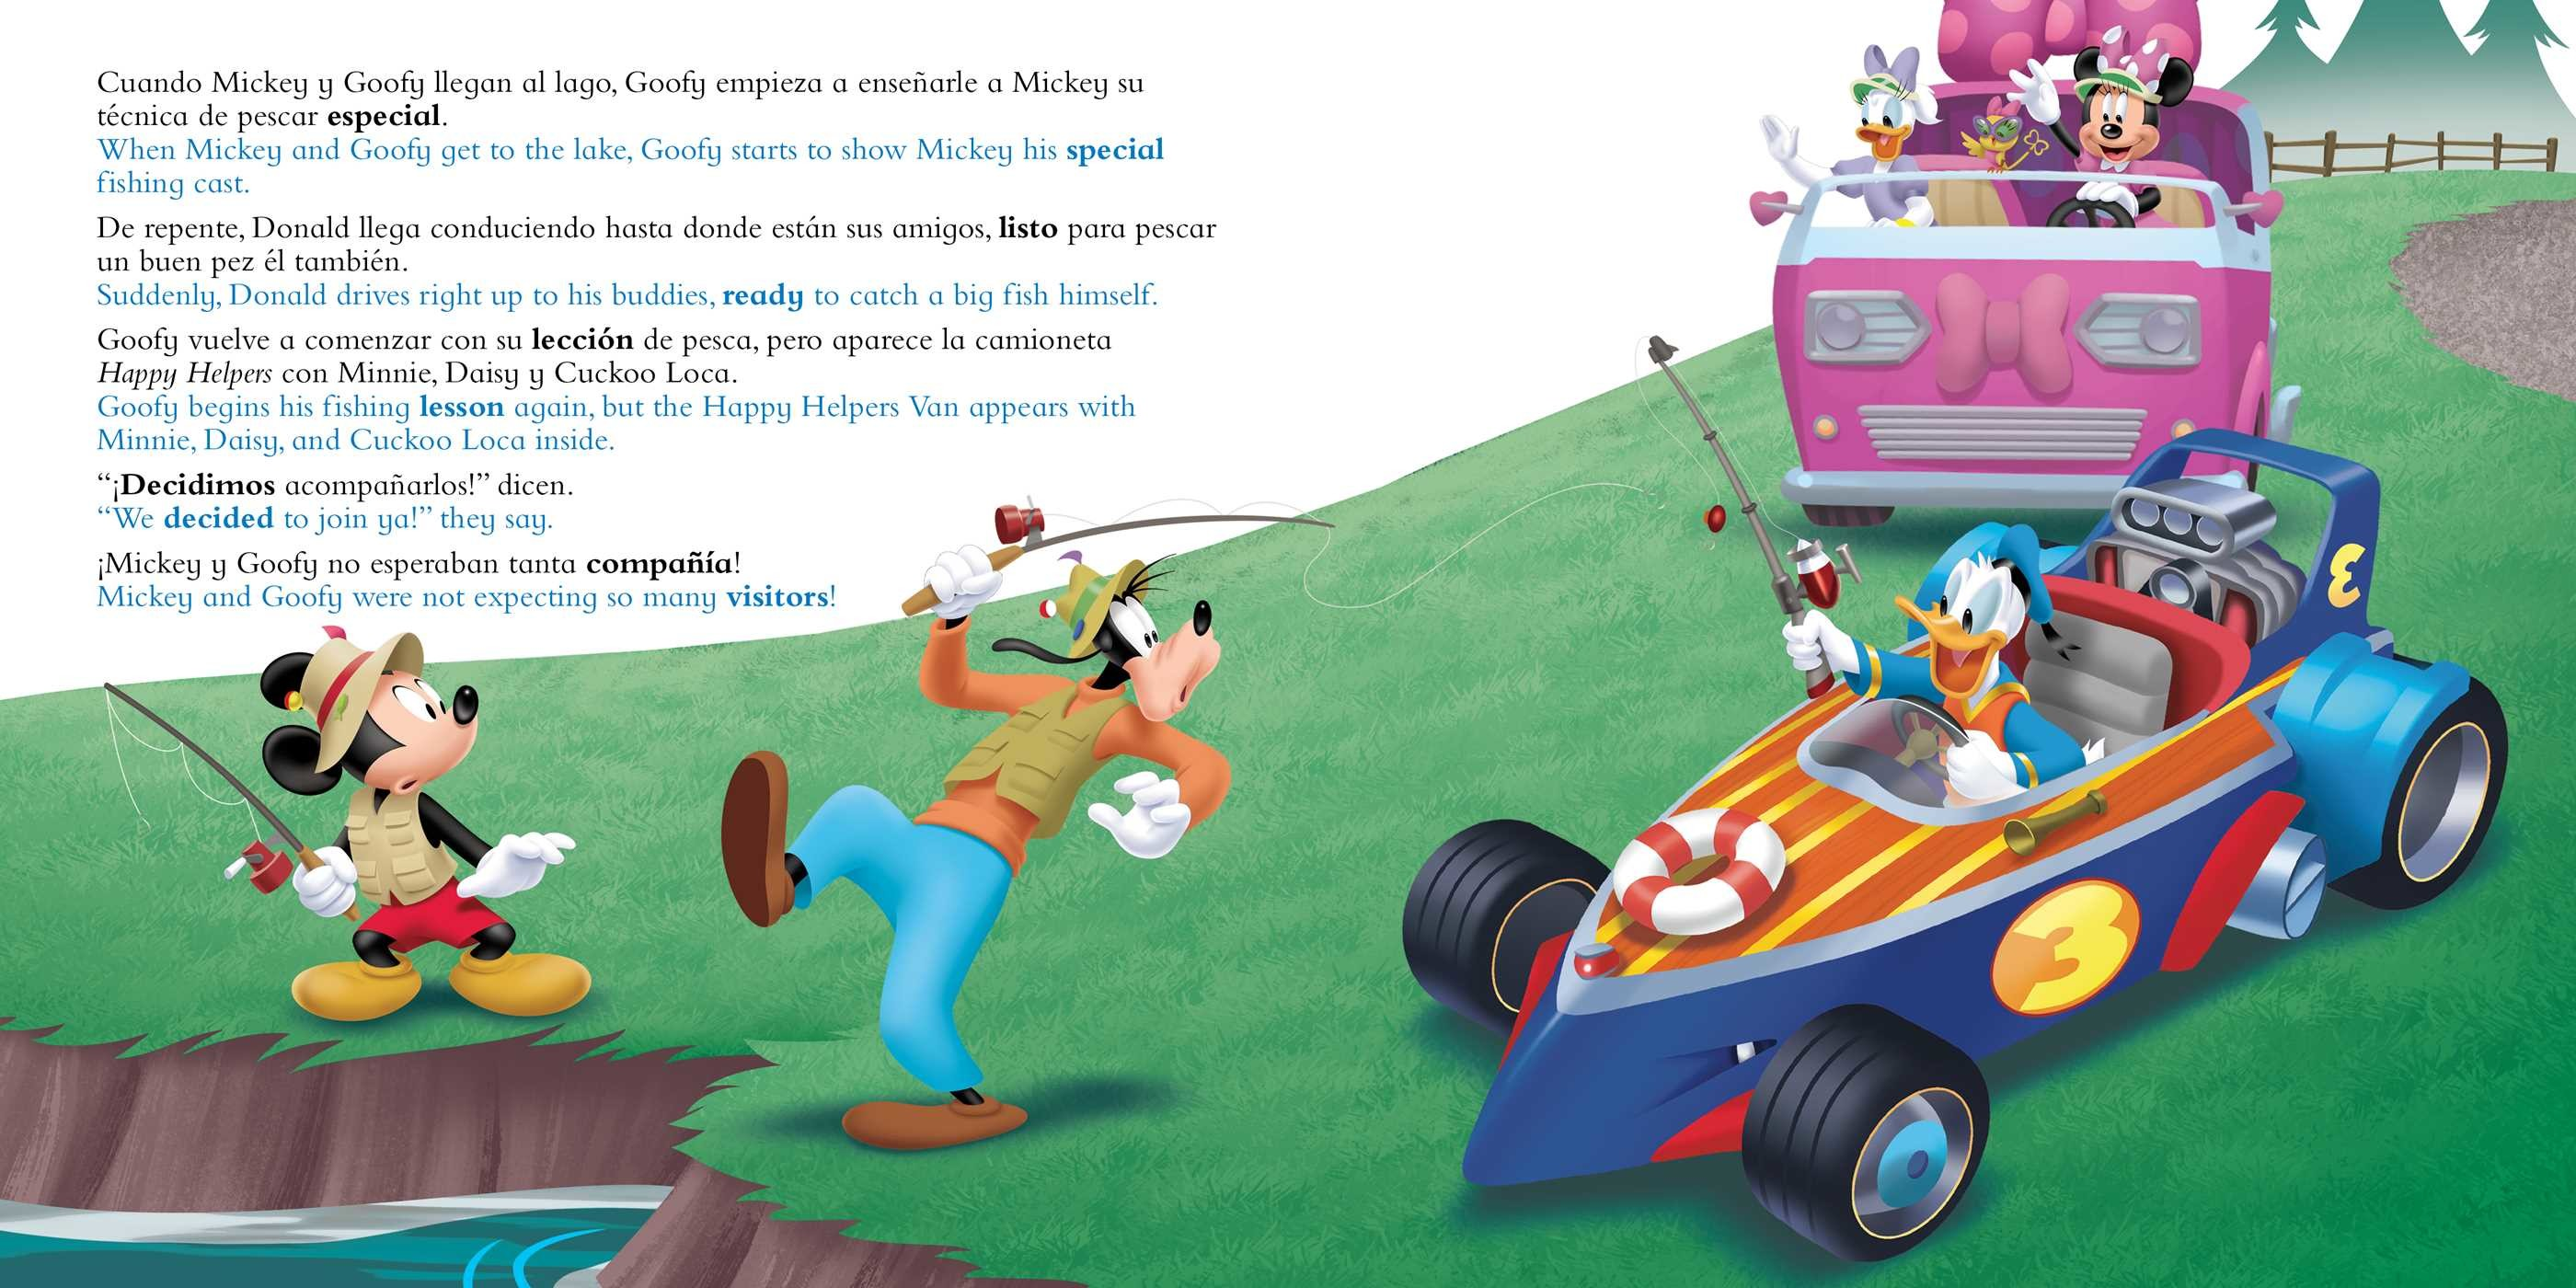 Catch that fish atrapa ese pez english spanish disney junior mickey and the roadster 9781499807974.in02